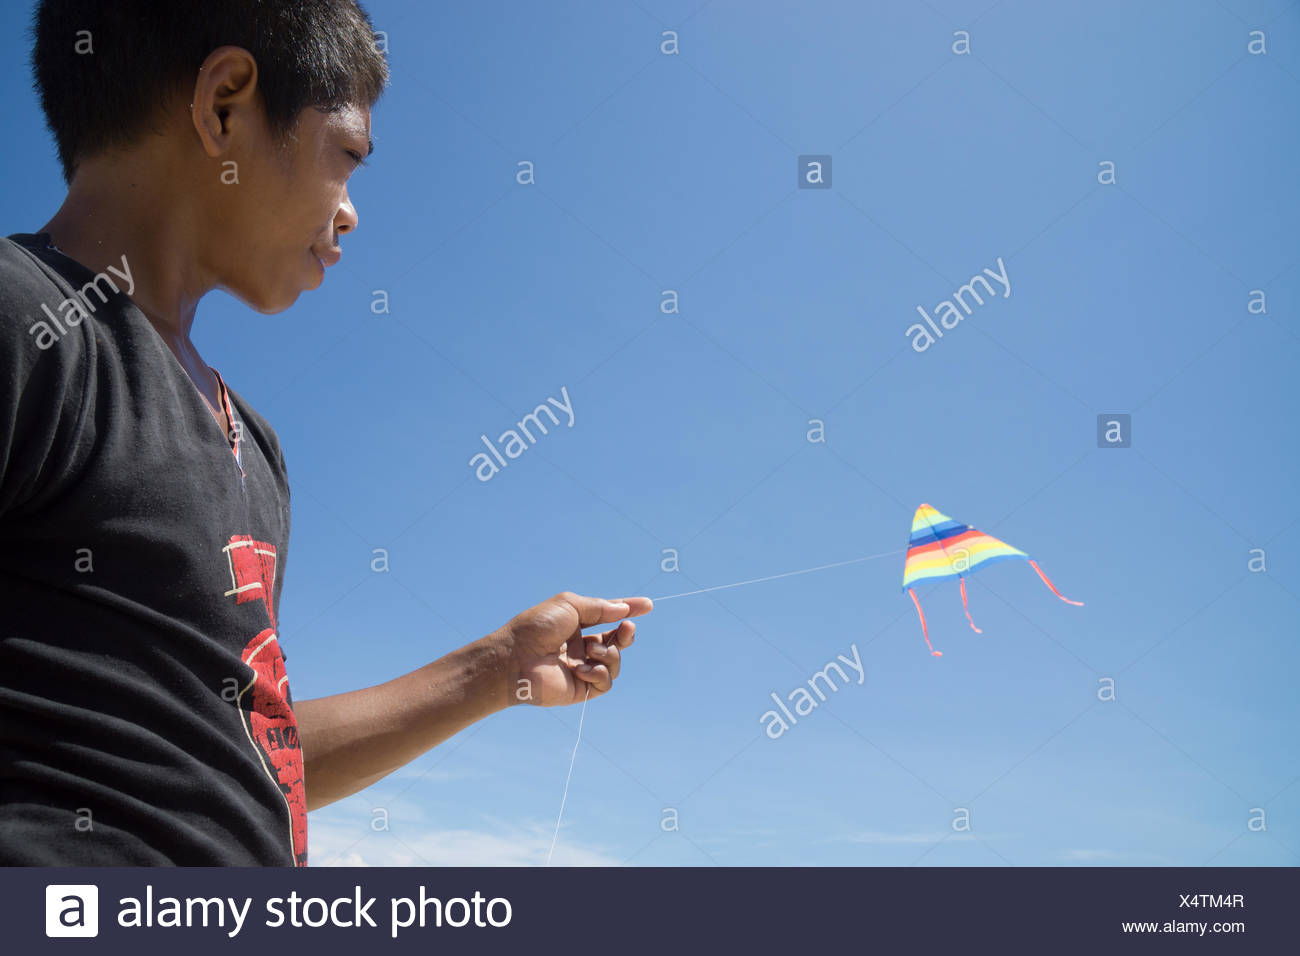 Portrait of boy flying kite - Stock Image